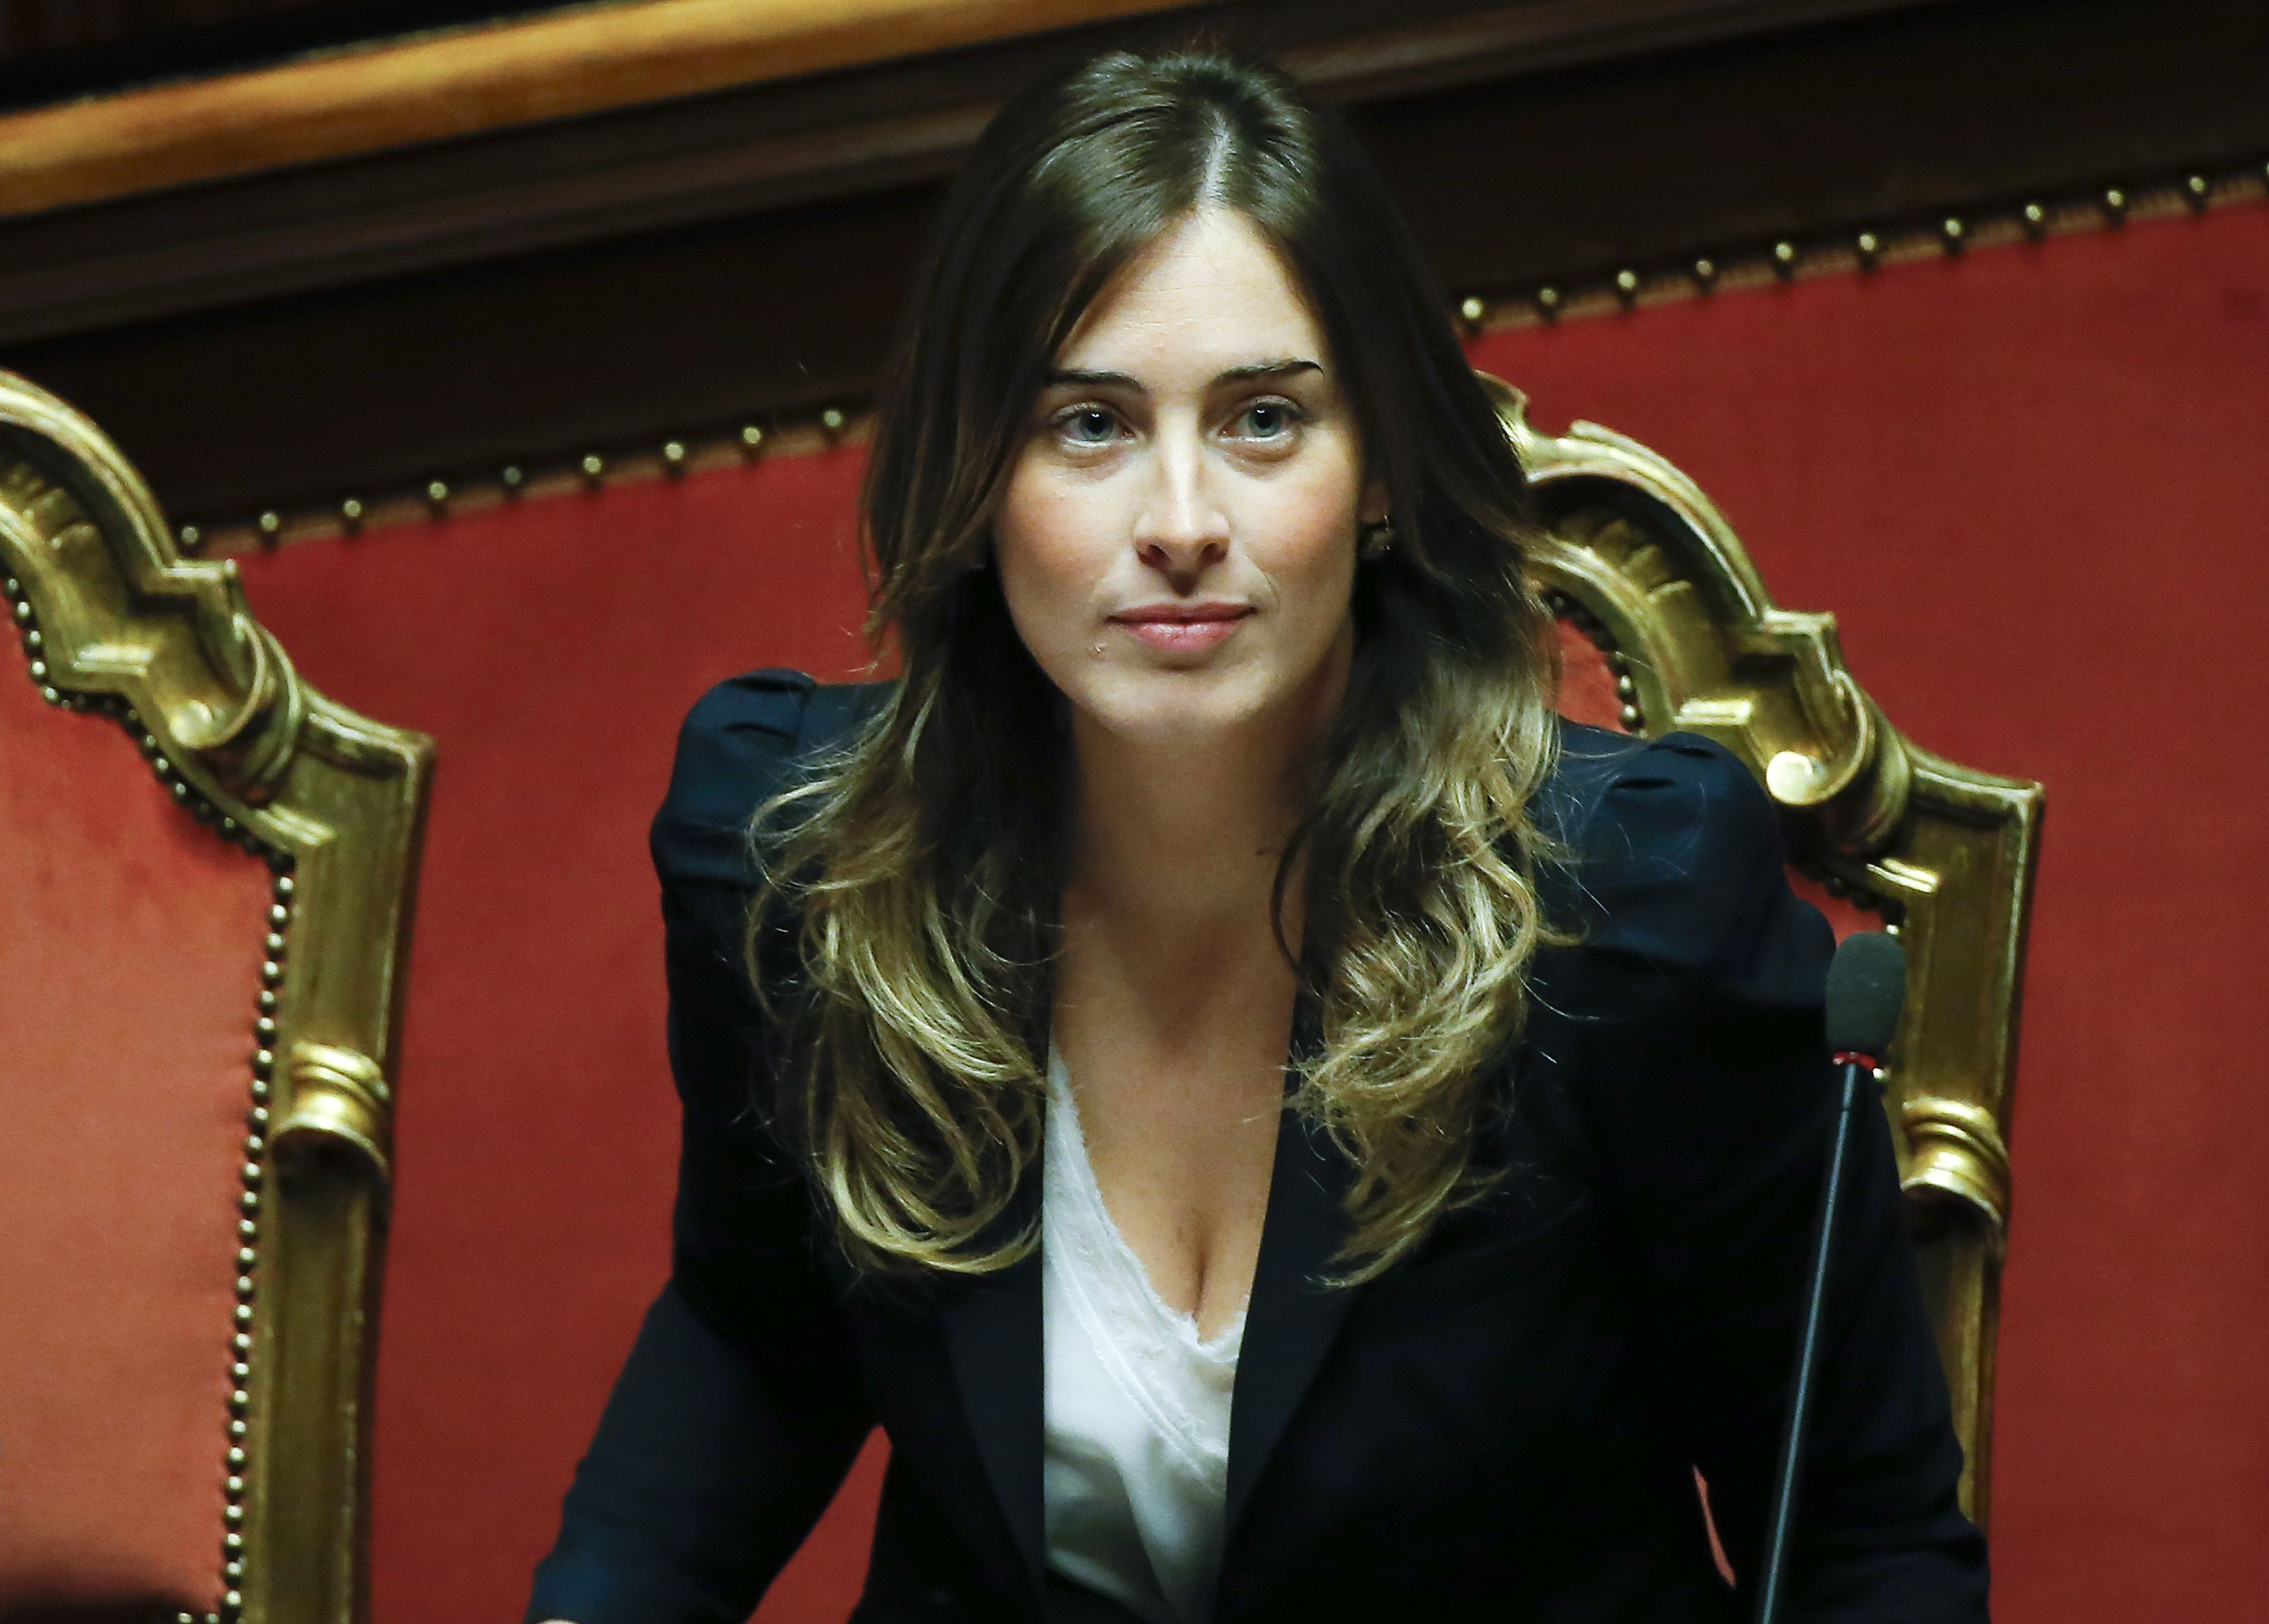 Italy's Minister for Constitutional Reforms and Parliamentary Relations Boschi looks on during a confidence vote at the Senate in Rome